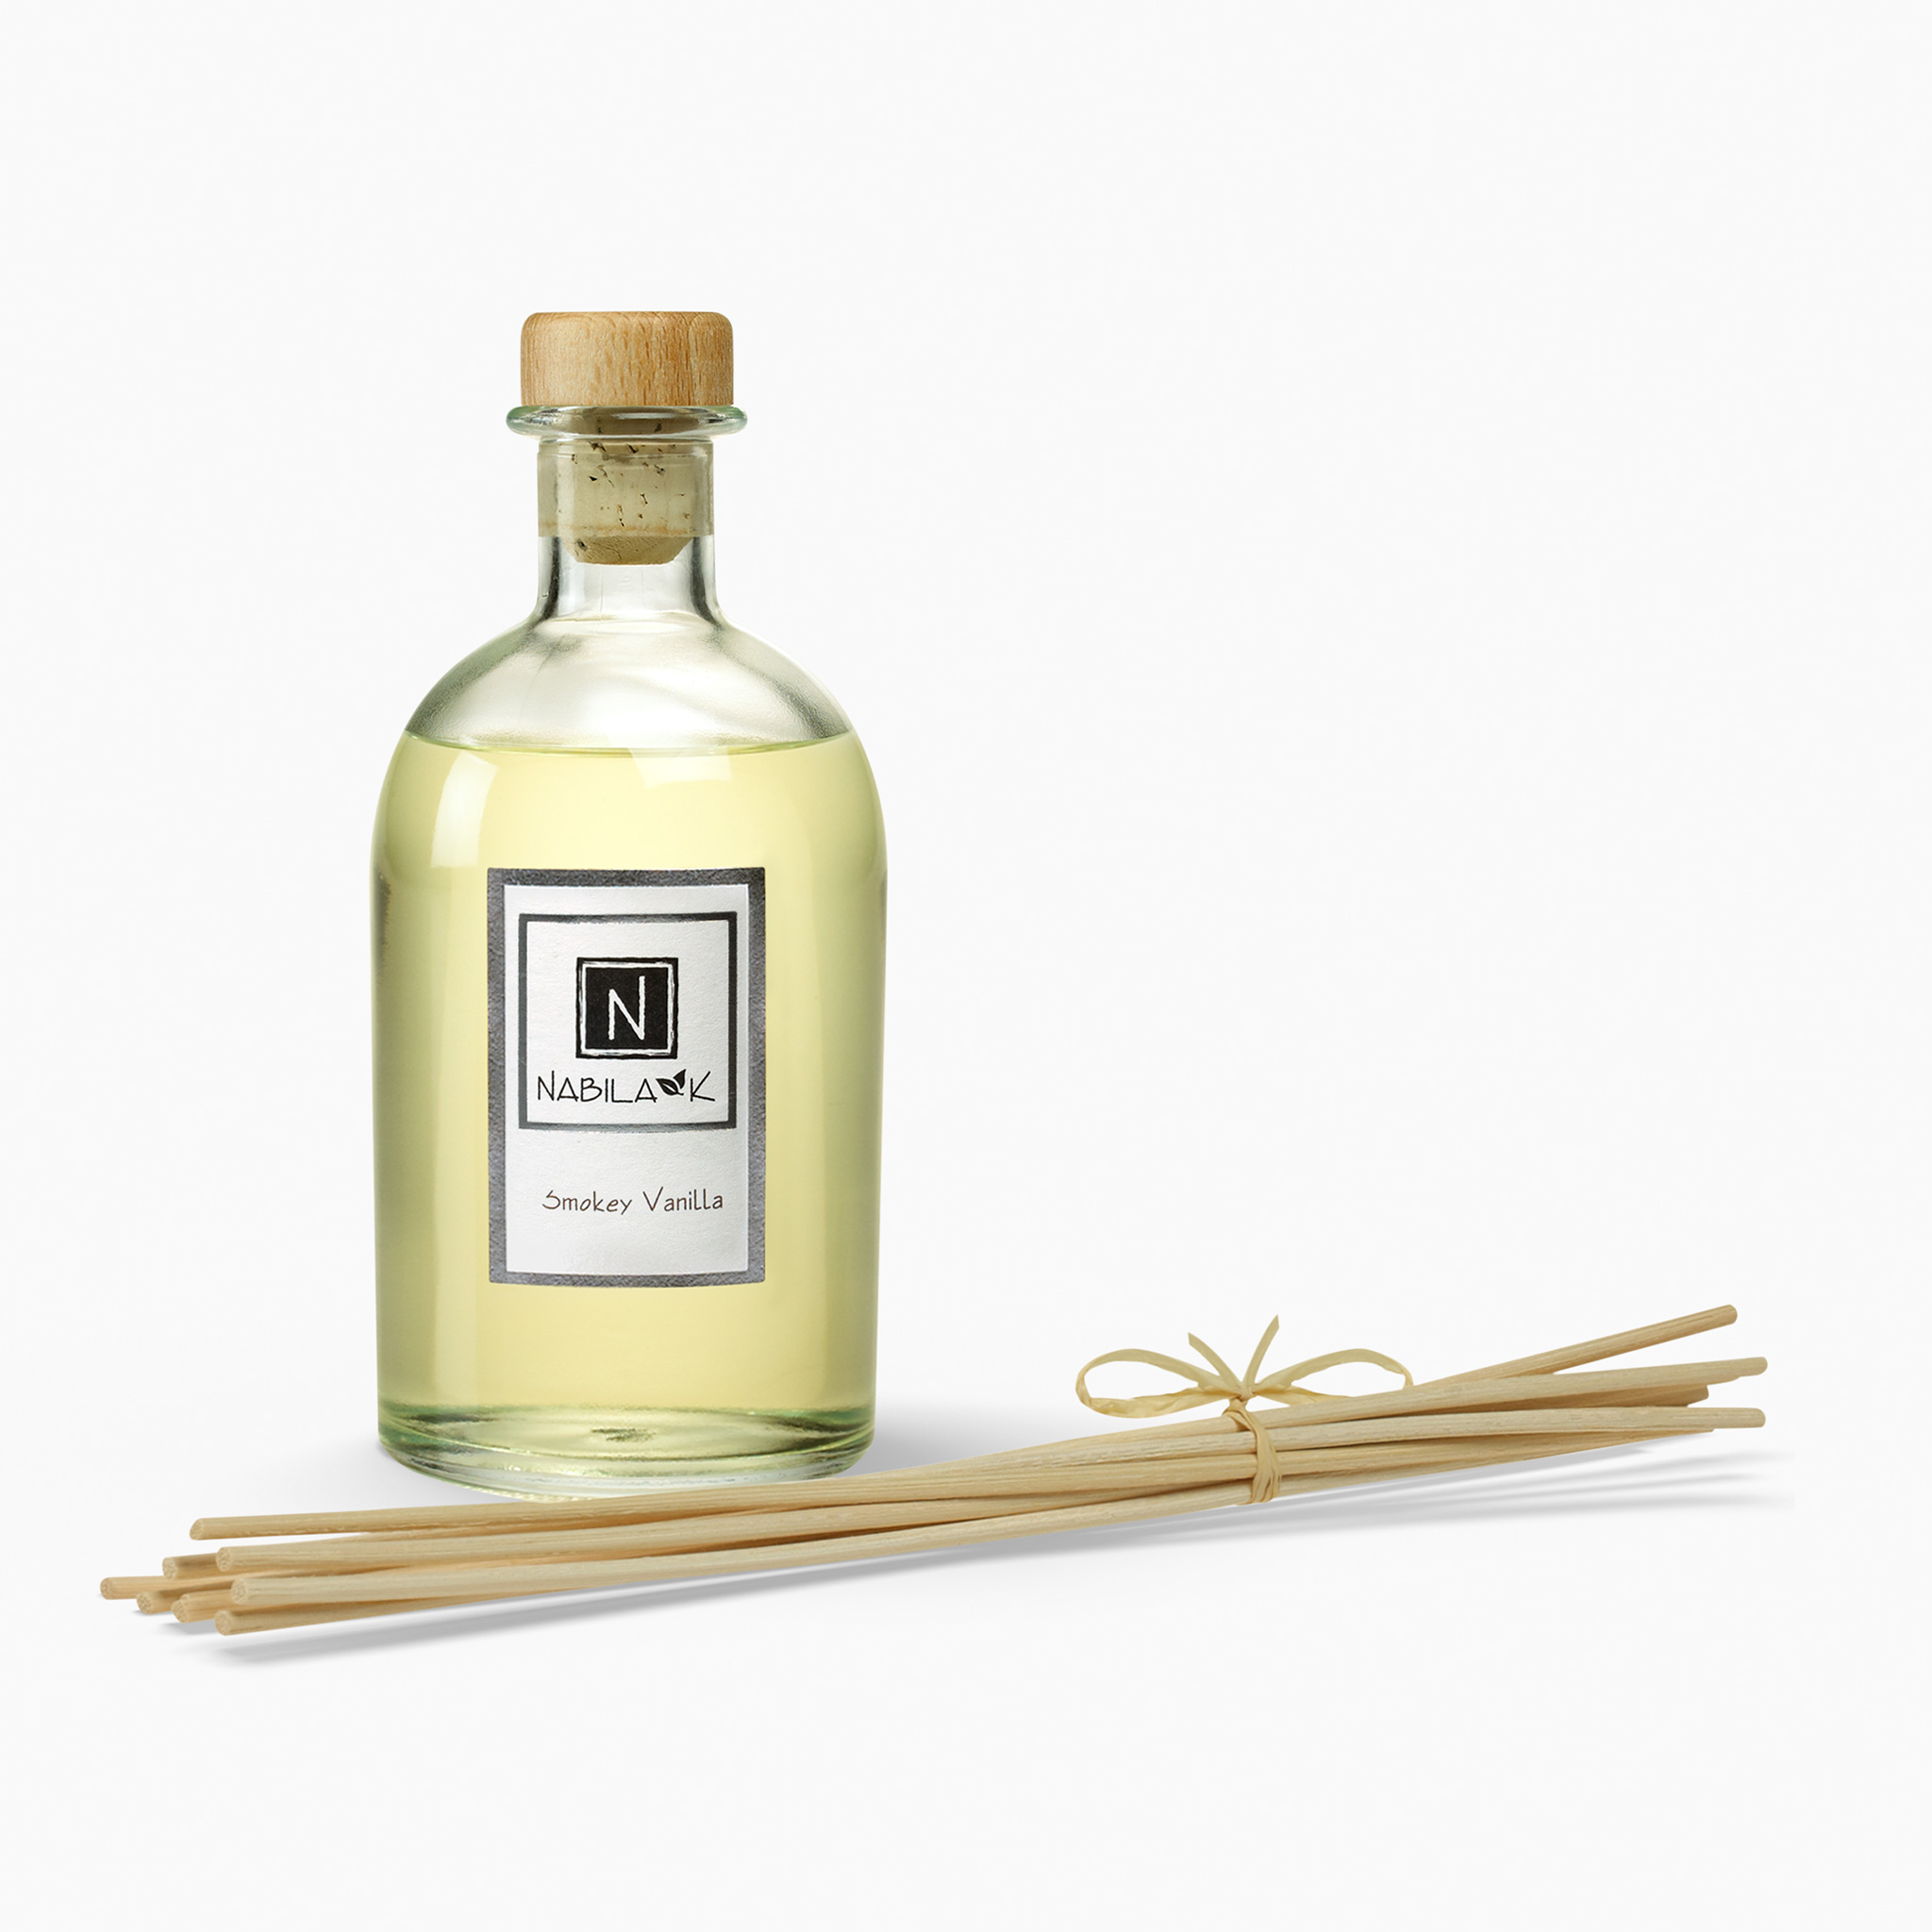 1 Bottle of Nabila K's Smokey Vanilla Diffuser with Reeds